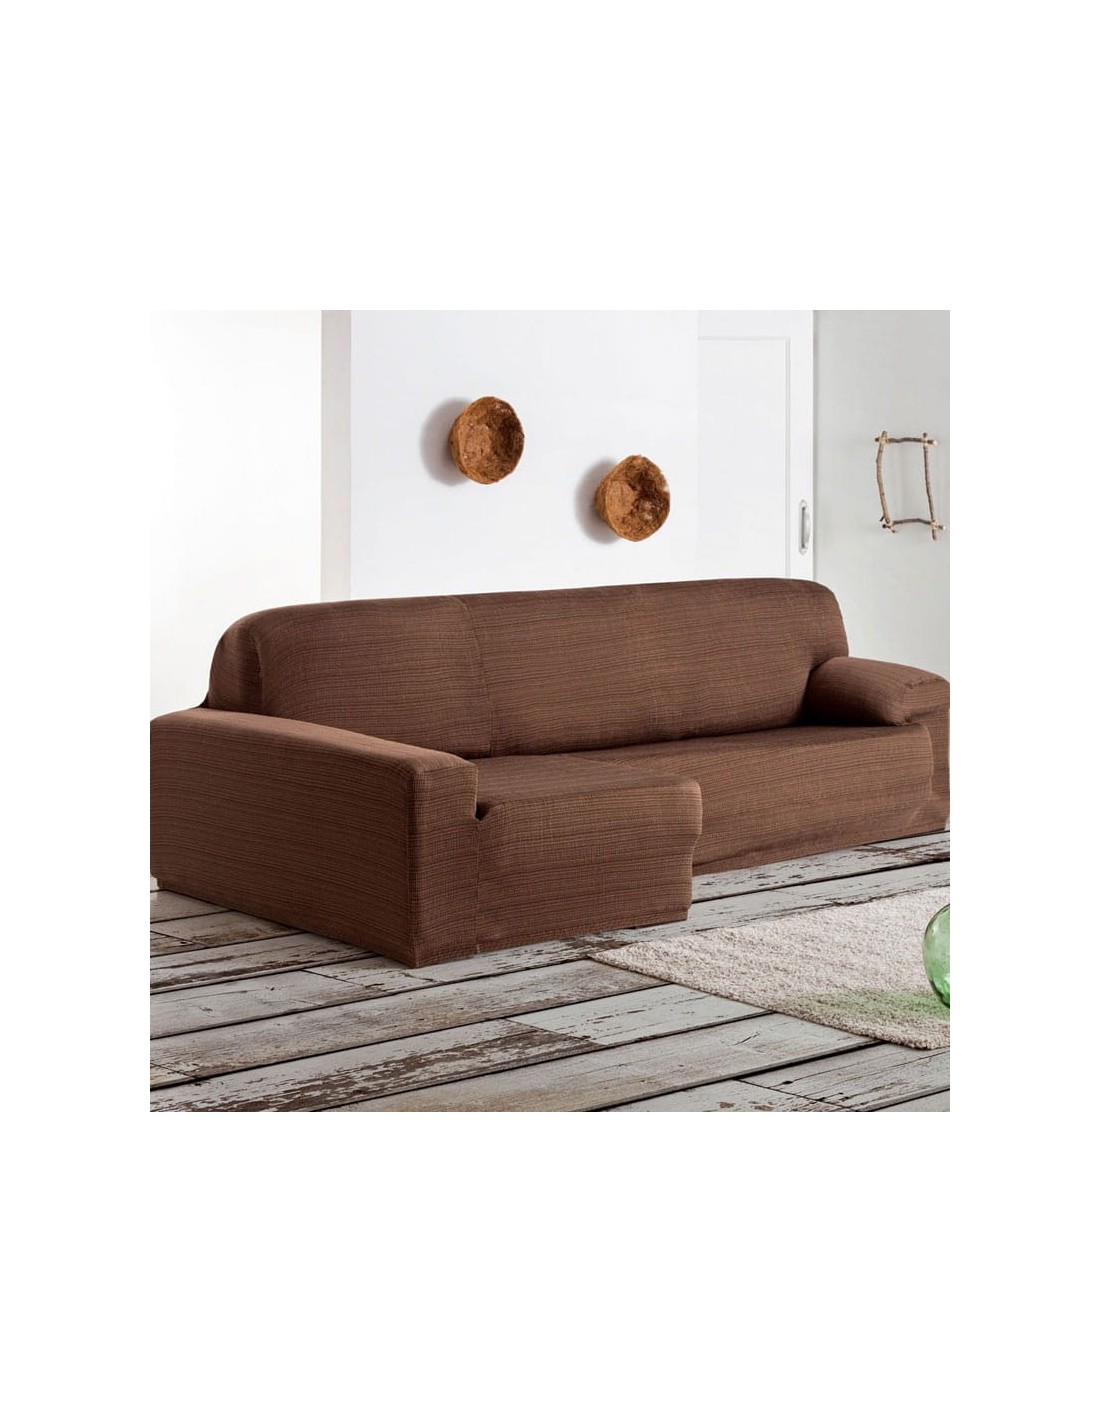 Funda sof chaise longue eysa brazo largo aquiles sofundas for Sofa chester chaise longue